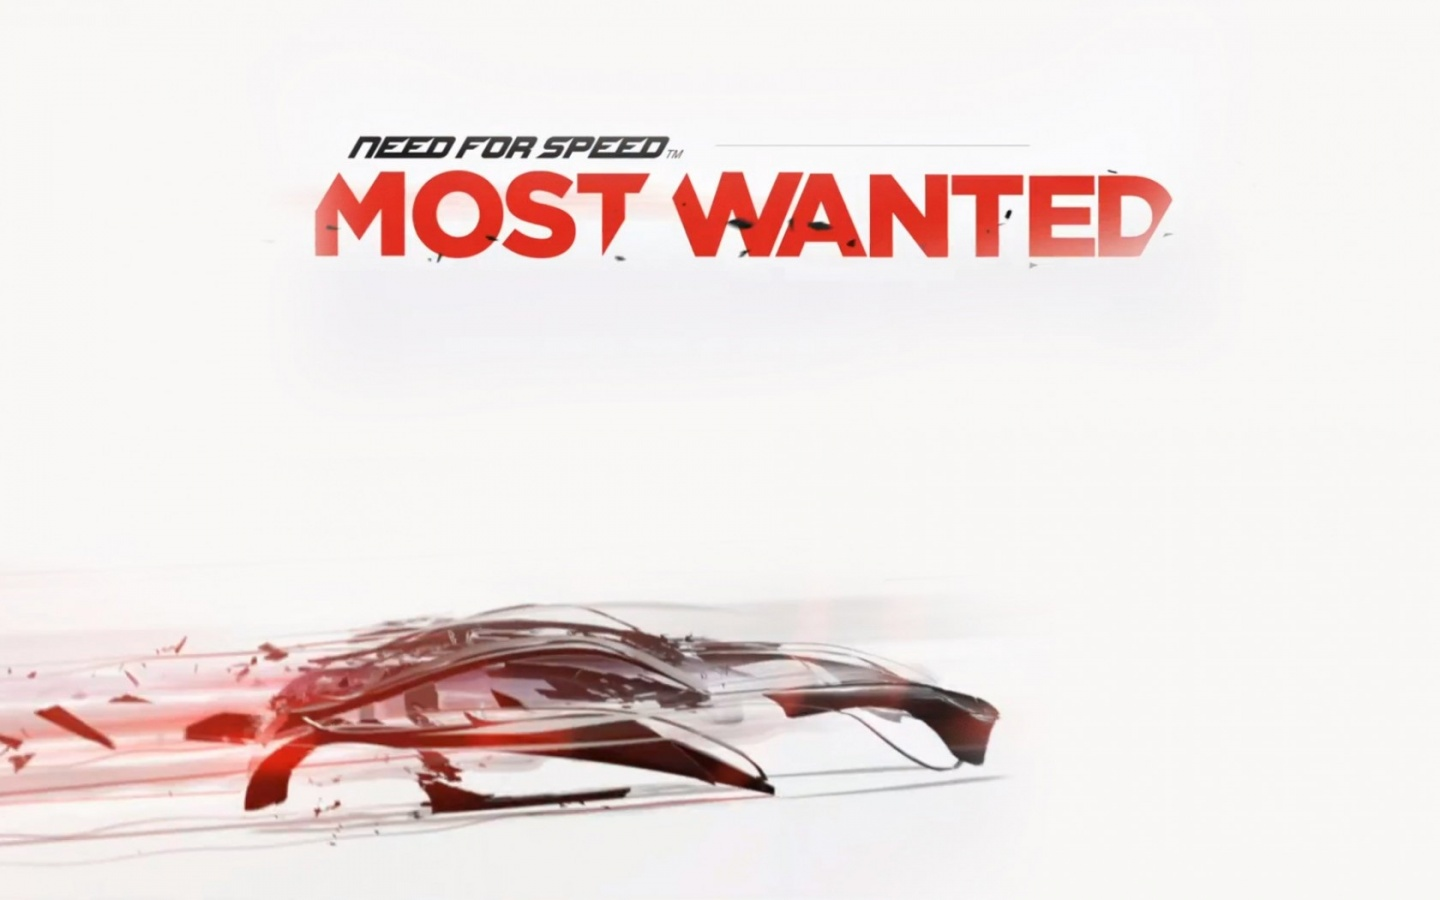 Need For Speed Most Wanted HD desktop wallpaper Widescreen